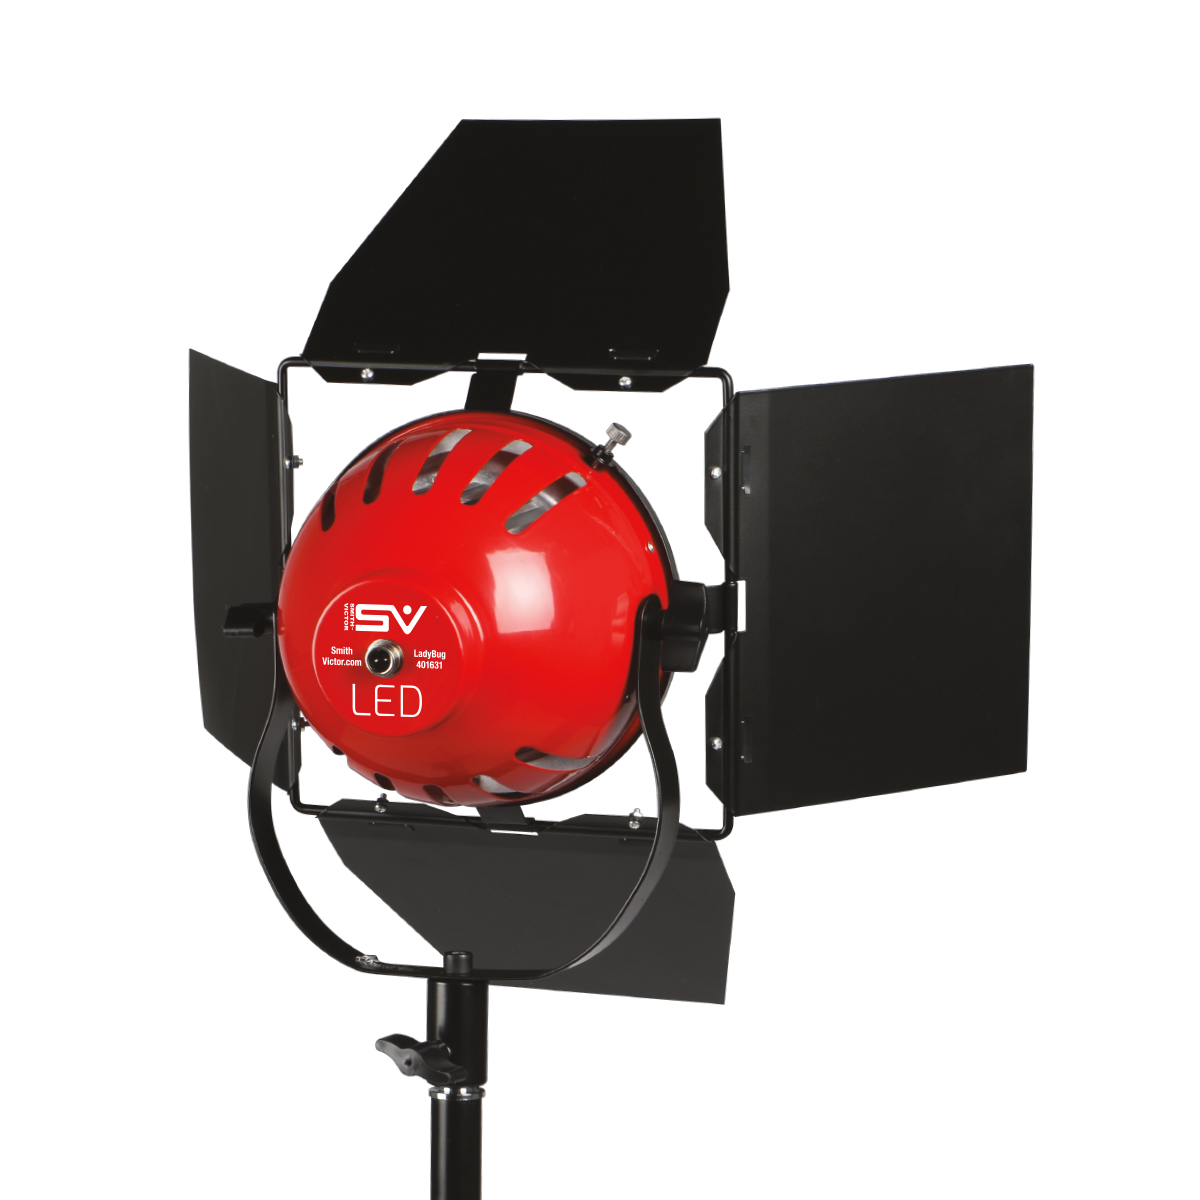 7c0a4a5602ab LadyBug 1500 Soft LED 3-Light kit1500 watt 3-point lighting kit with boom,  dimmers, barn-doors and travel case!